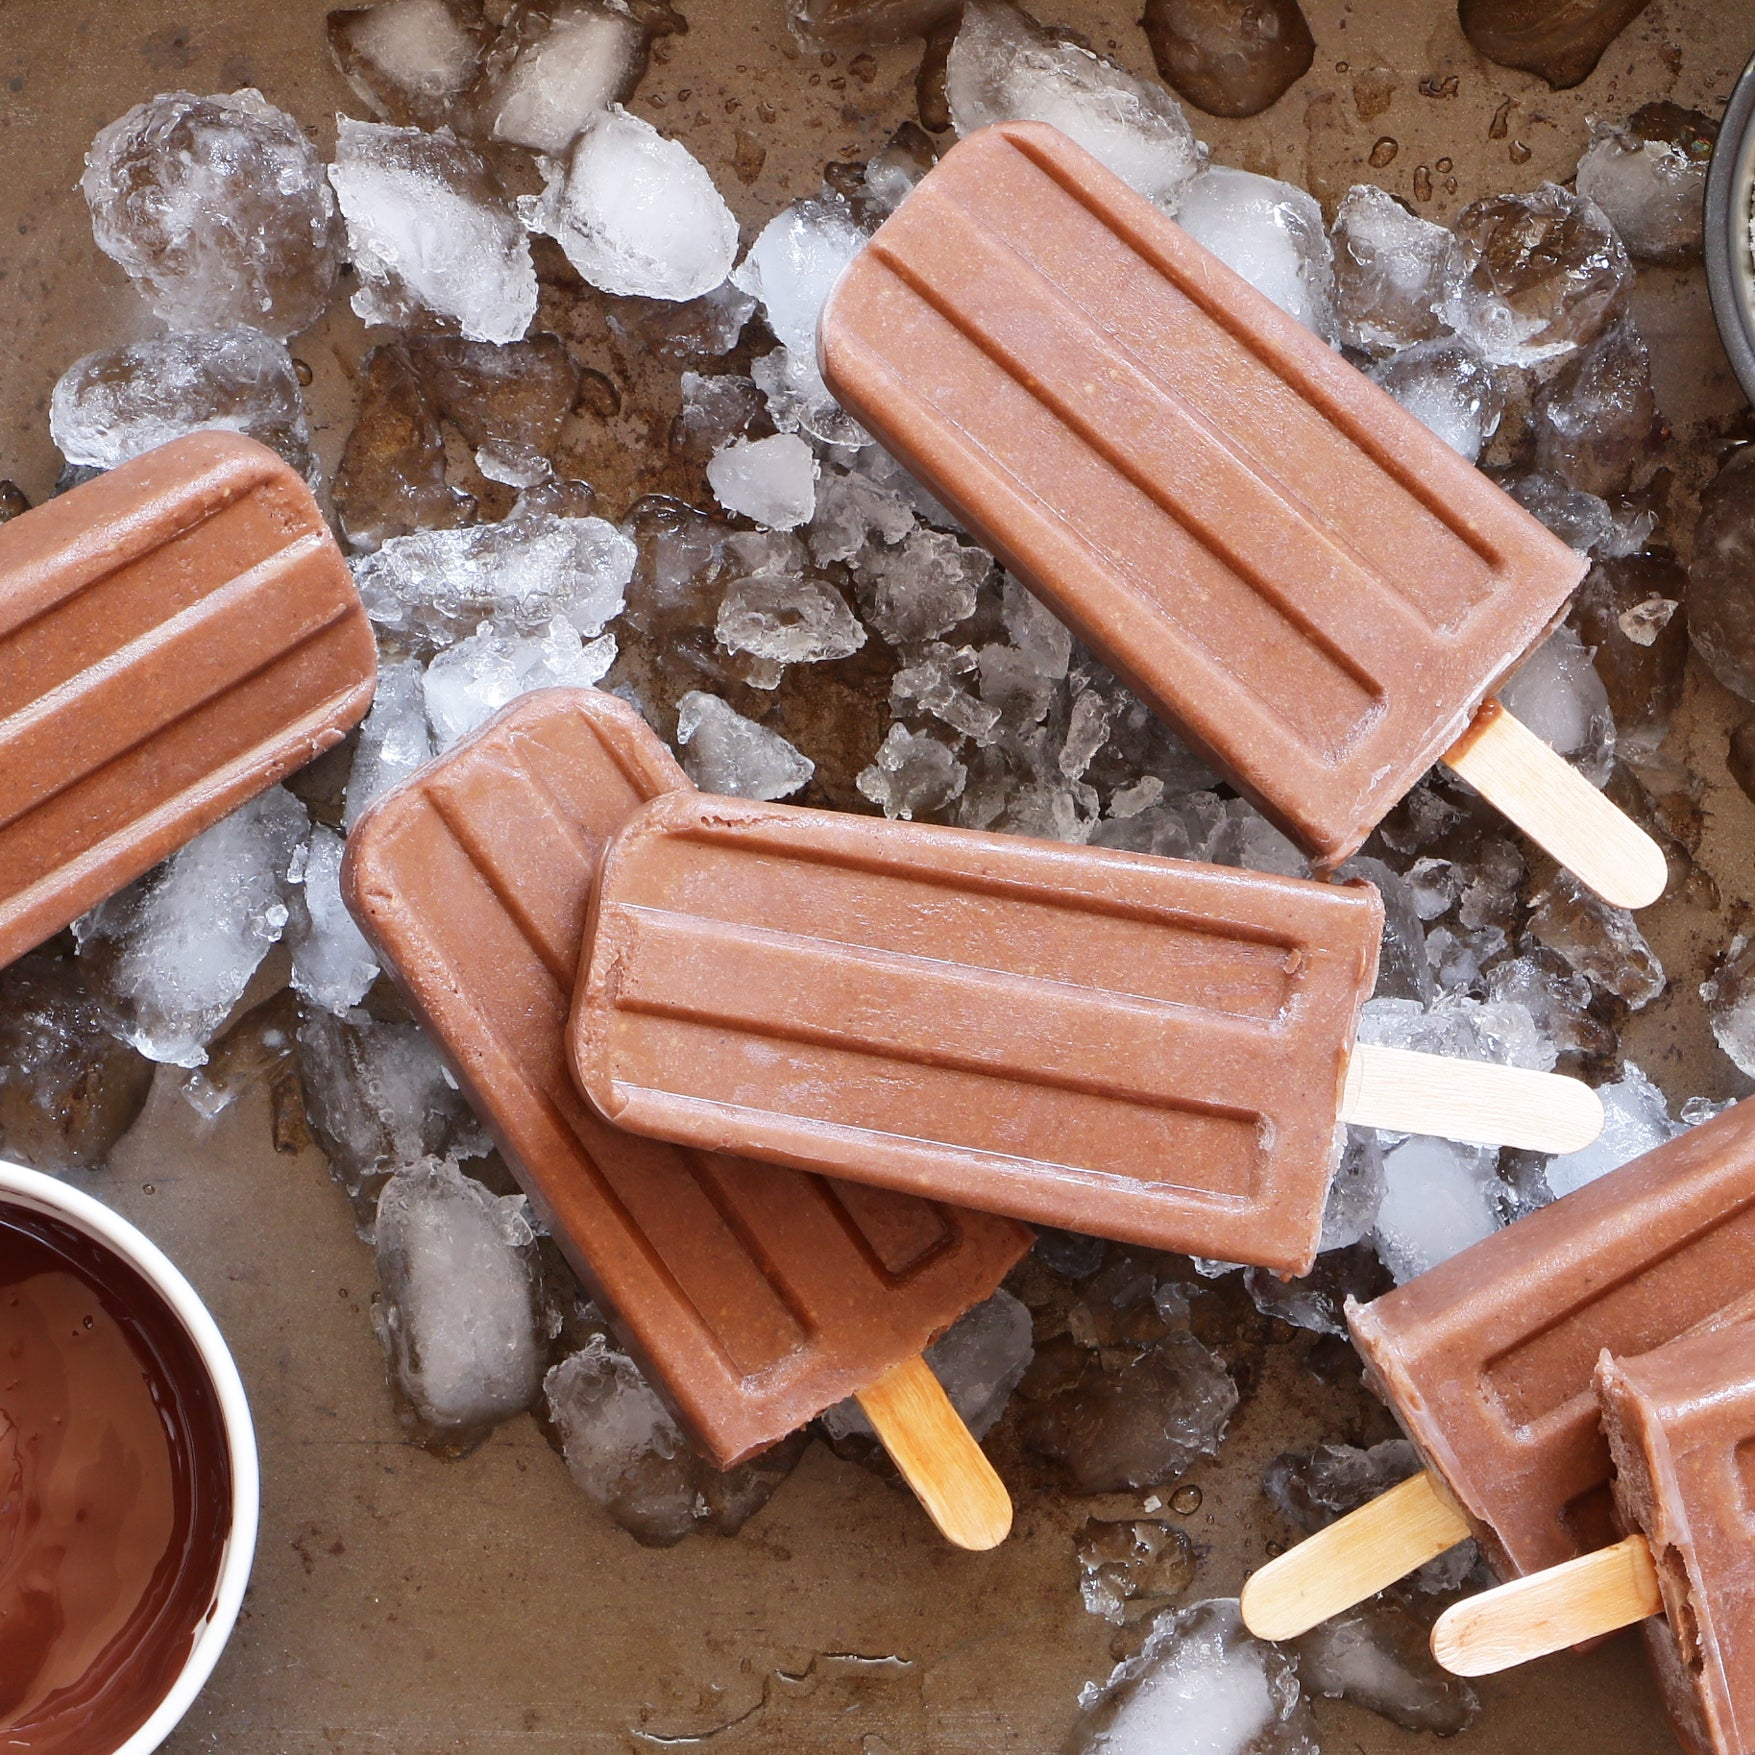 Deluxious Fudgesicles